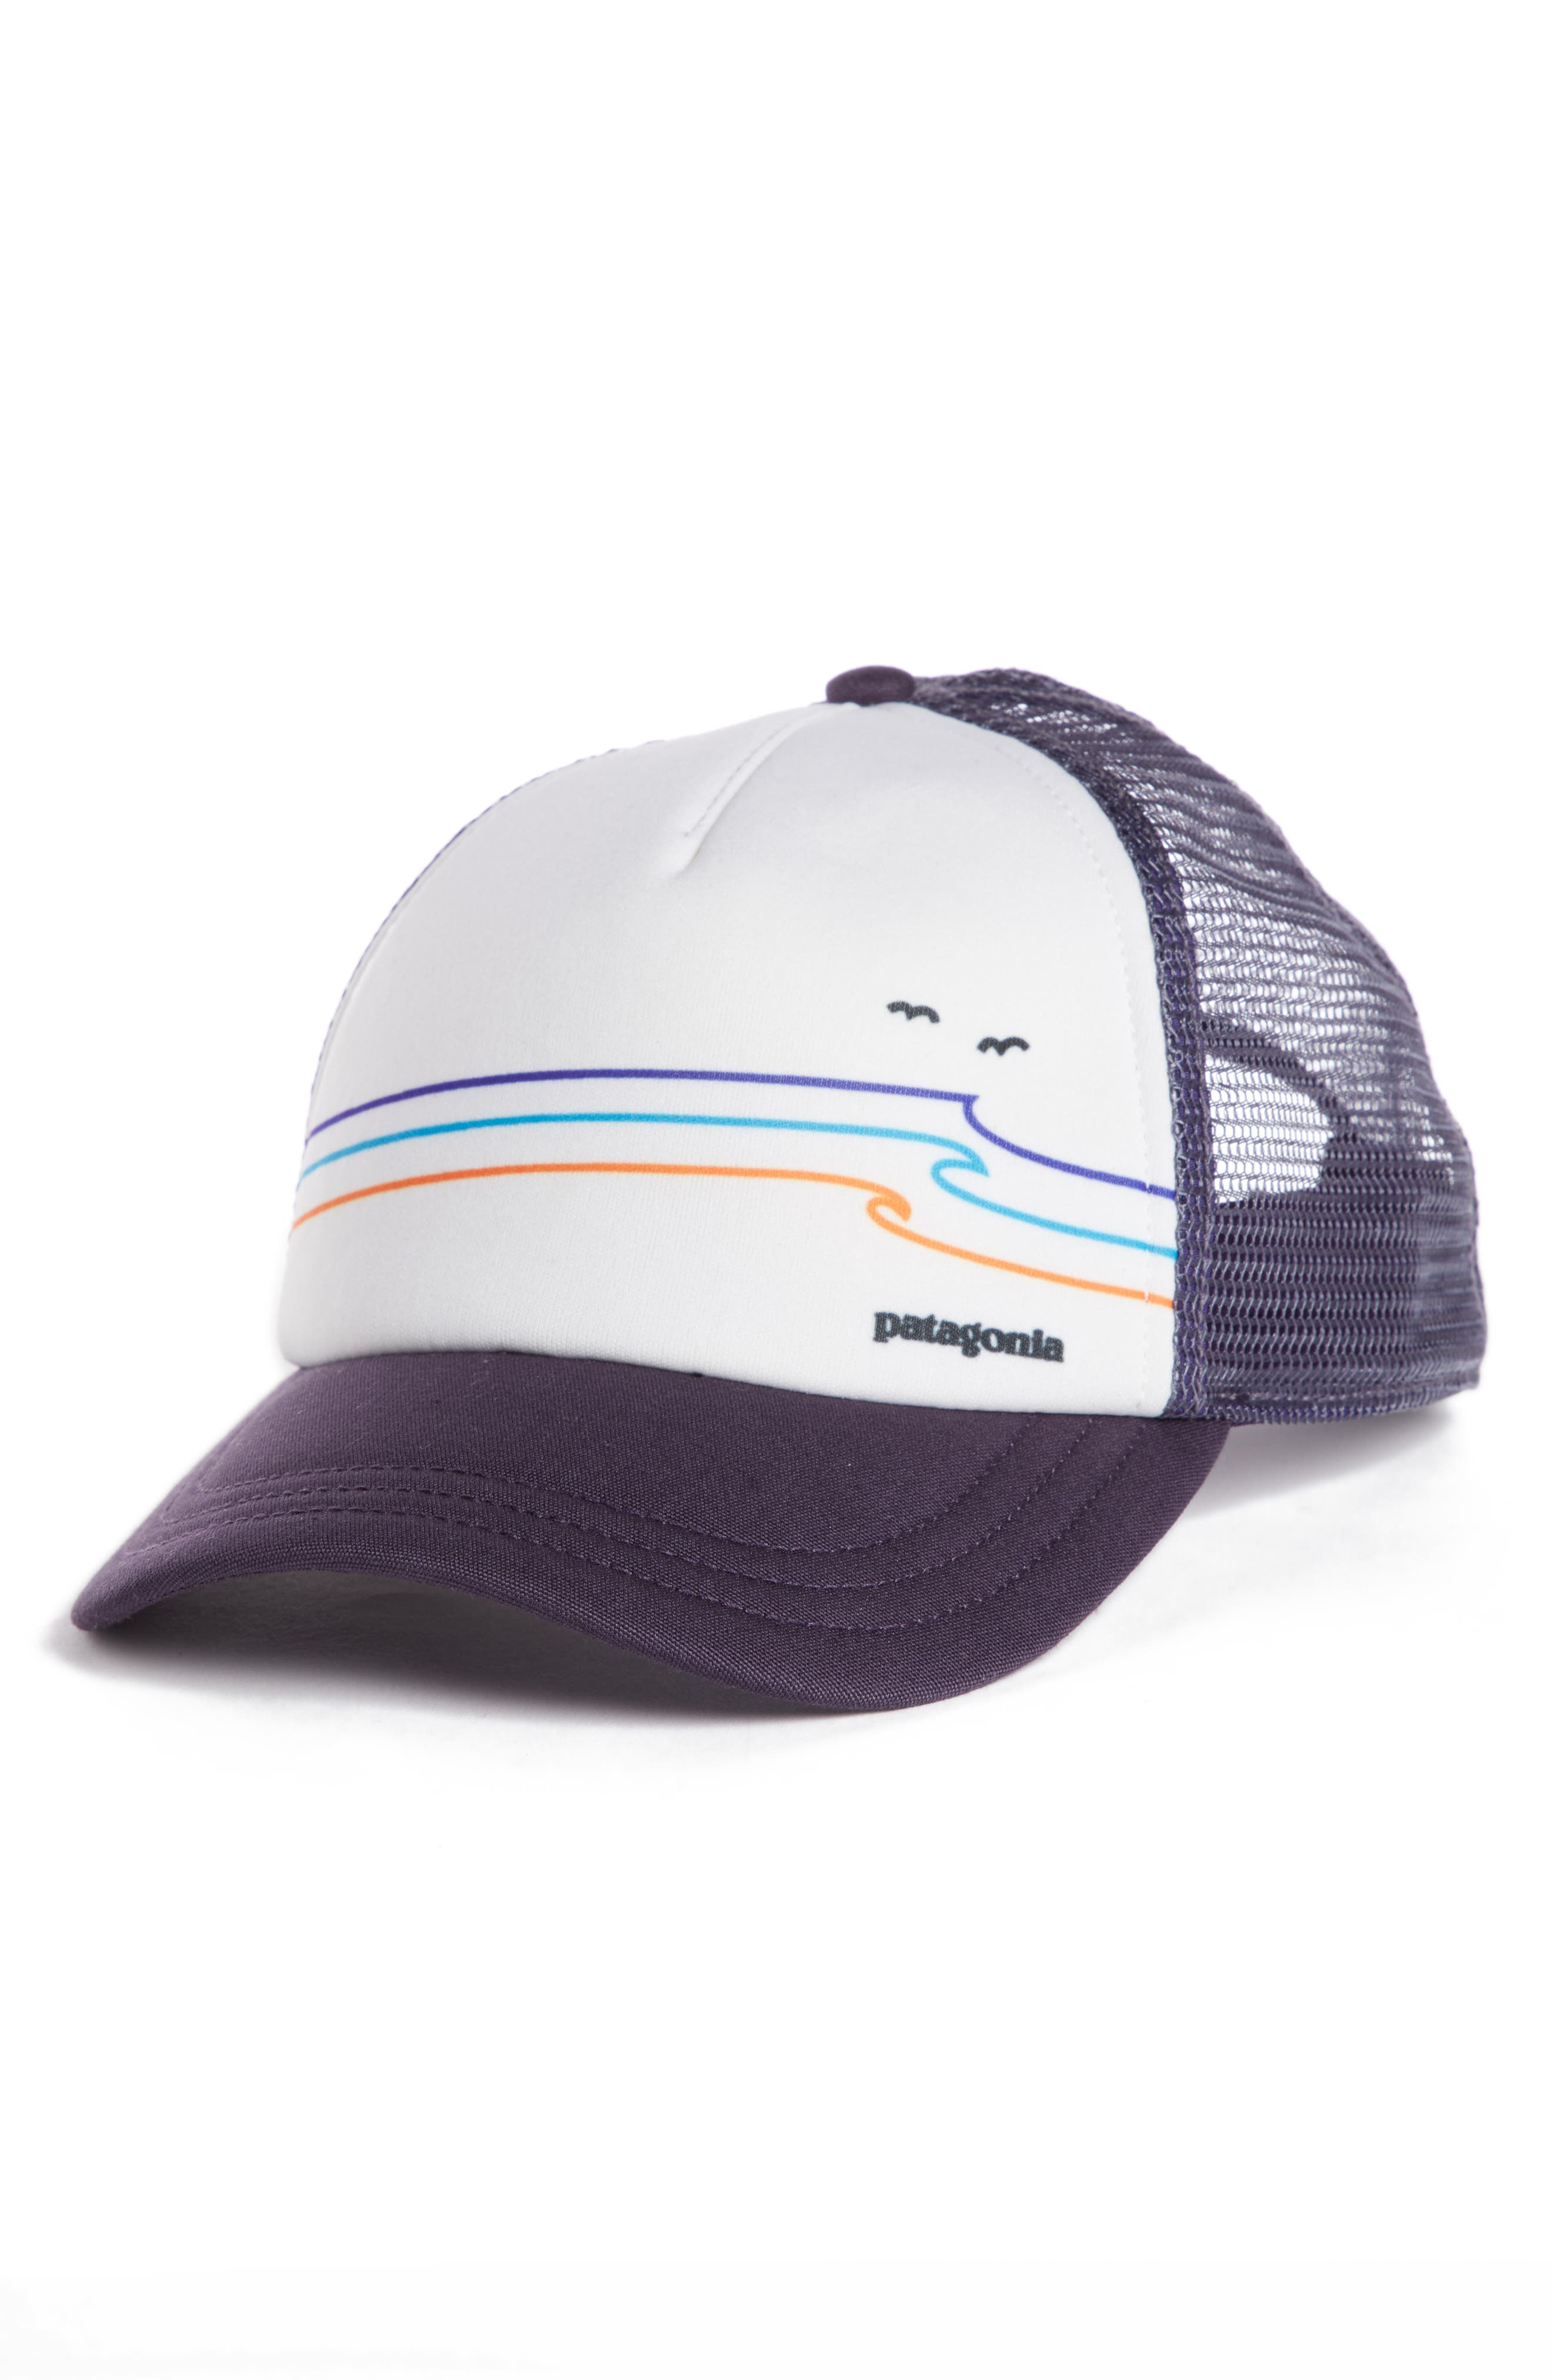 TIDE RIDE INTERSTATE TRUCKER HAT - PURPLE